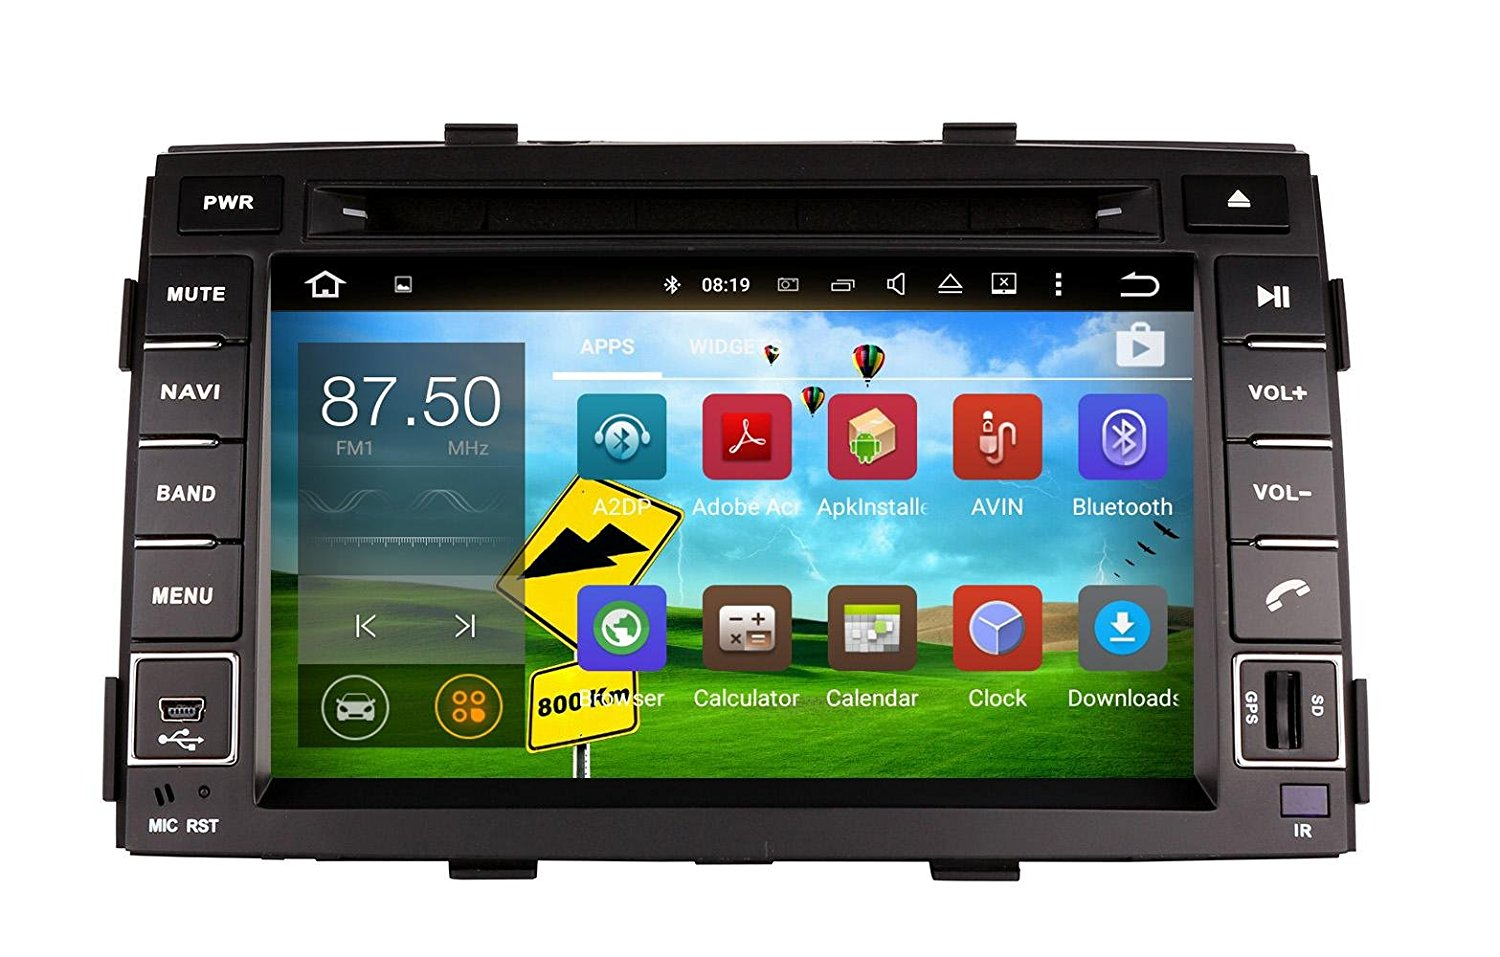 XTTEK 7 inch HD 1024x600 Multi-touch Screen in dash Car GPS Navigation System for Kia Sorento 2011 2012 2013 Quad Core Android DVD Player+Bluetooth+WIFI+SWC+Backup Camera+North America Map